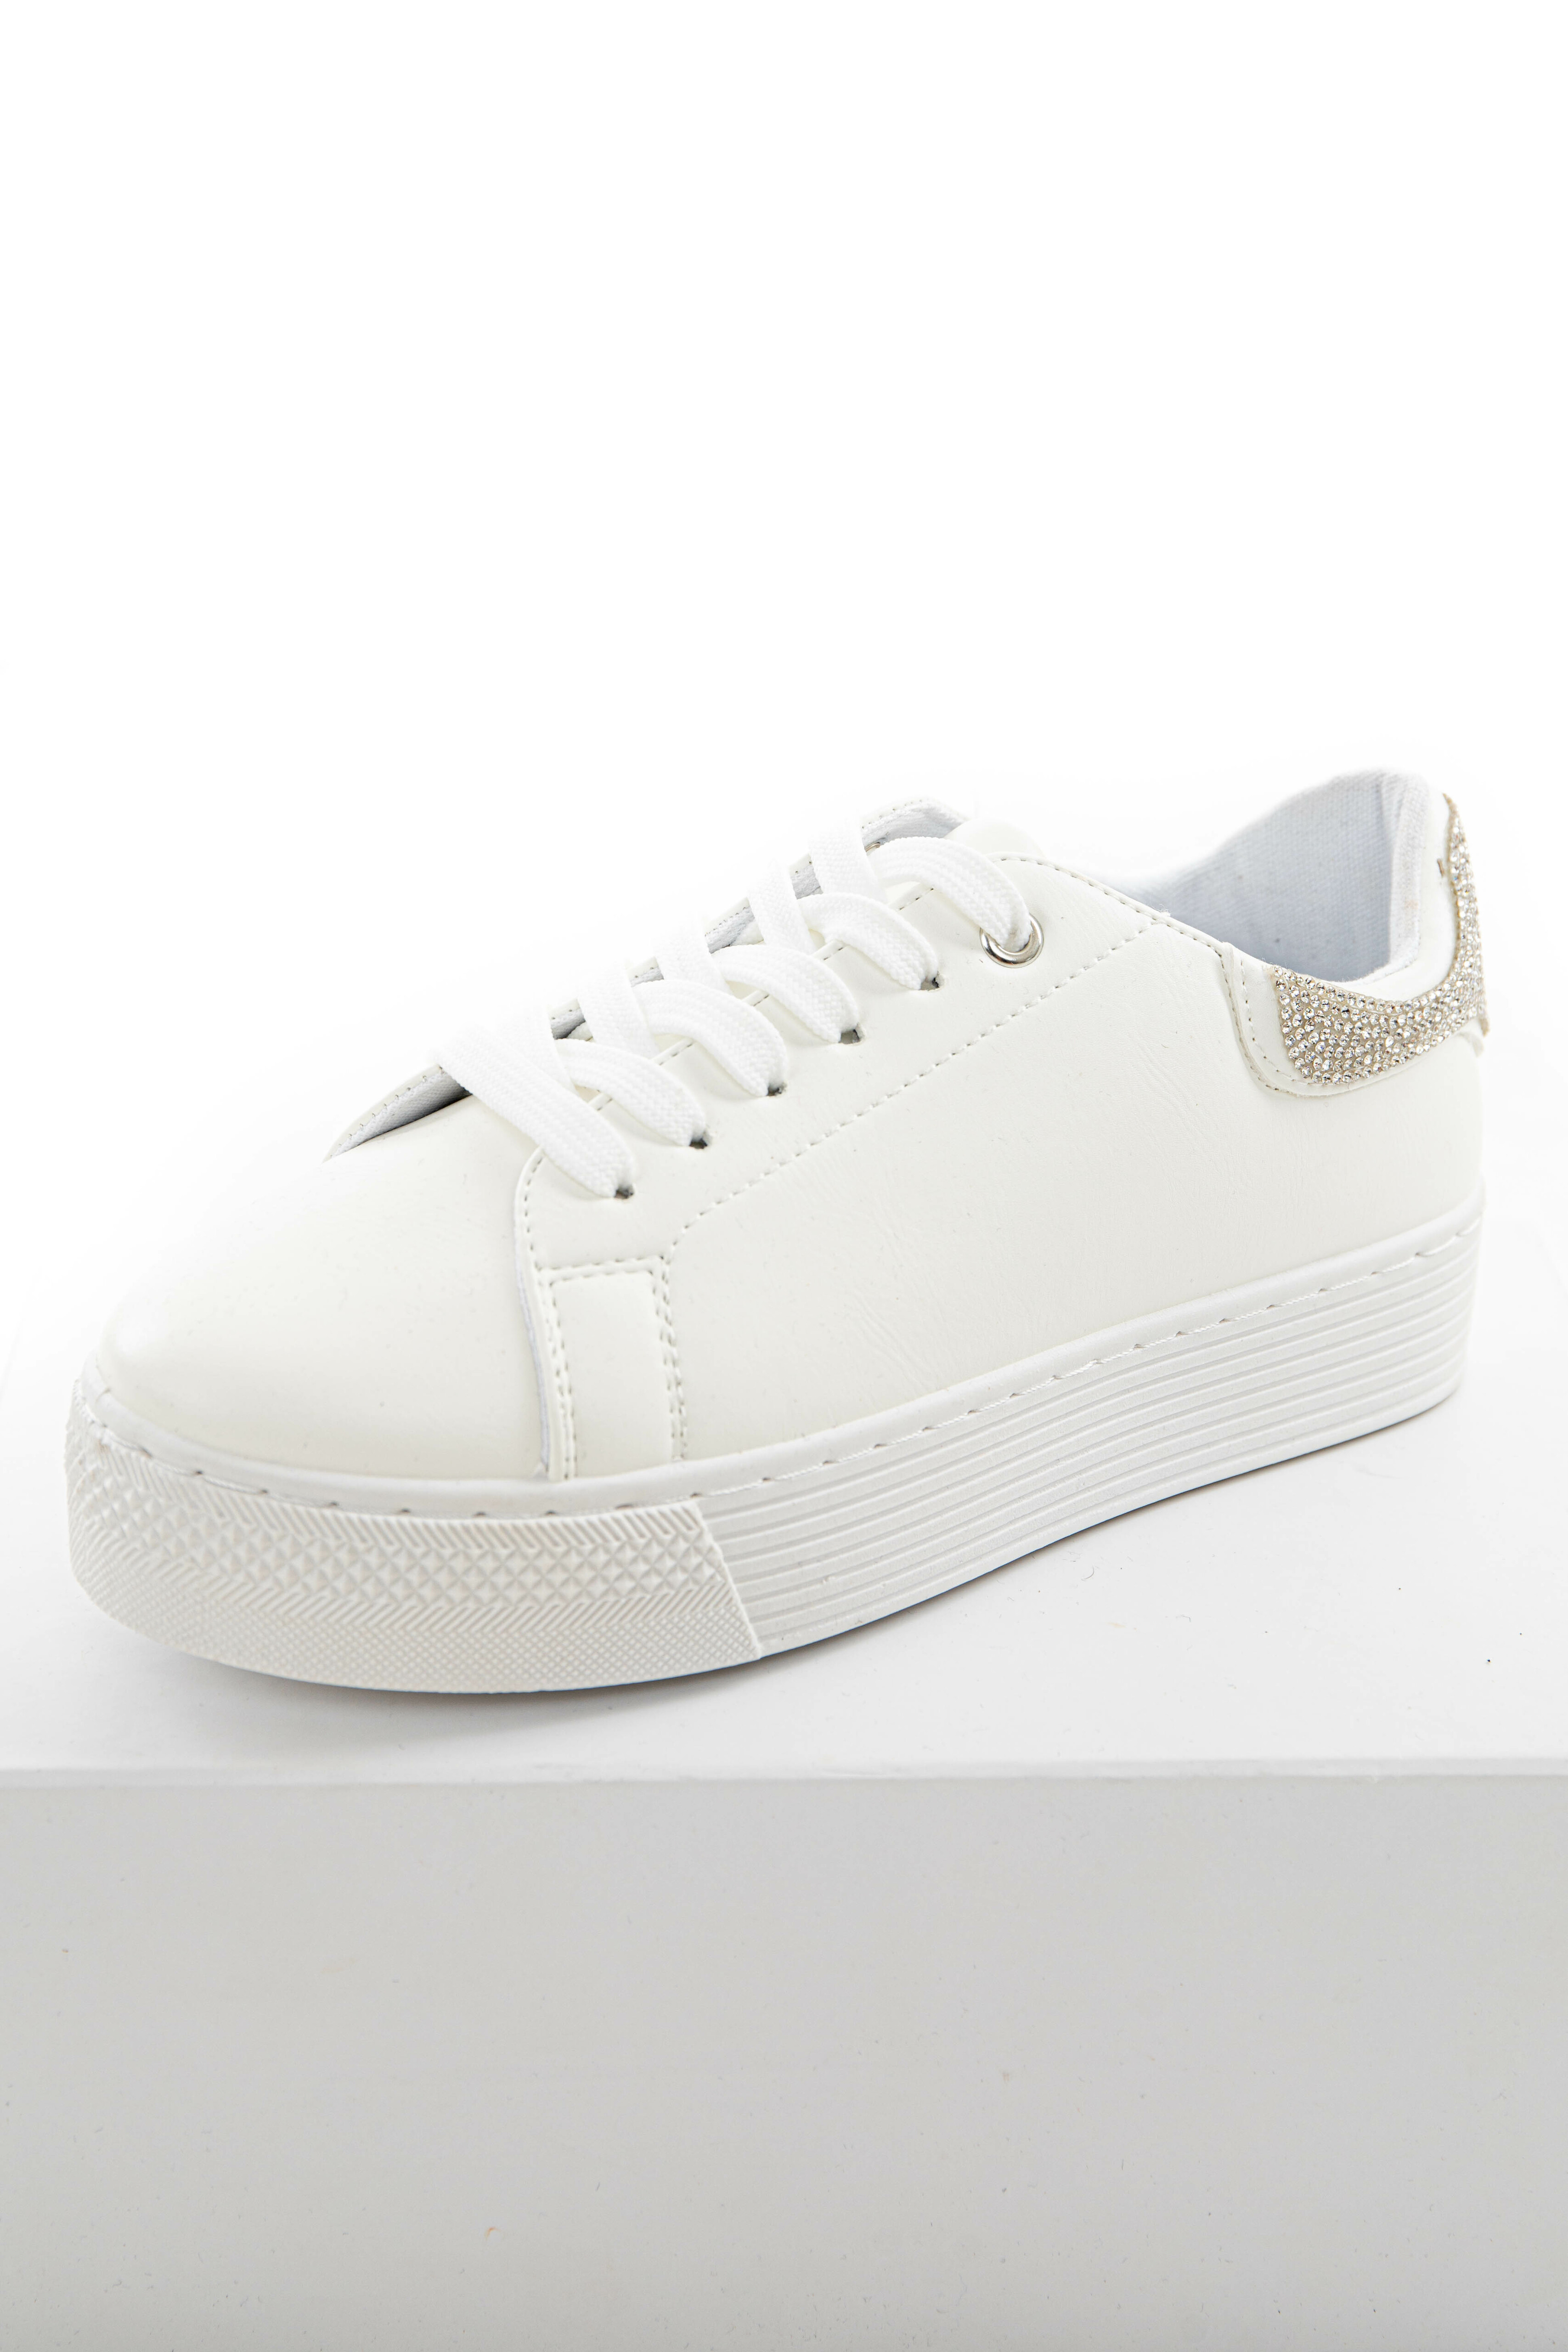 Off White Sneakers with Rhinestone Details